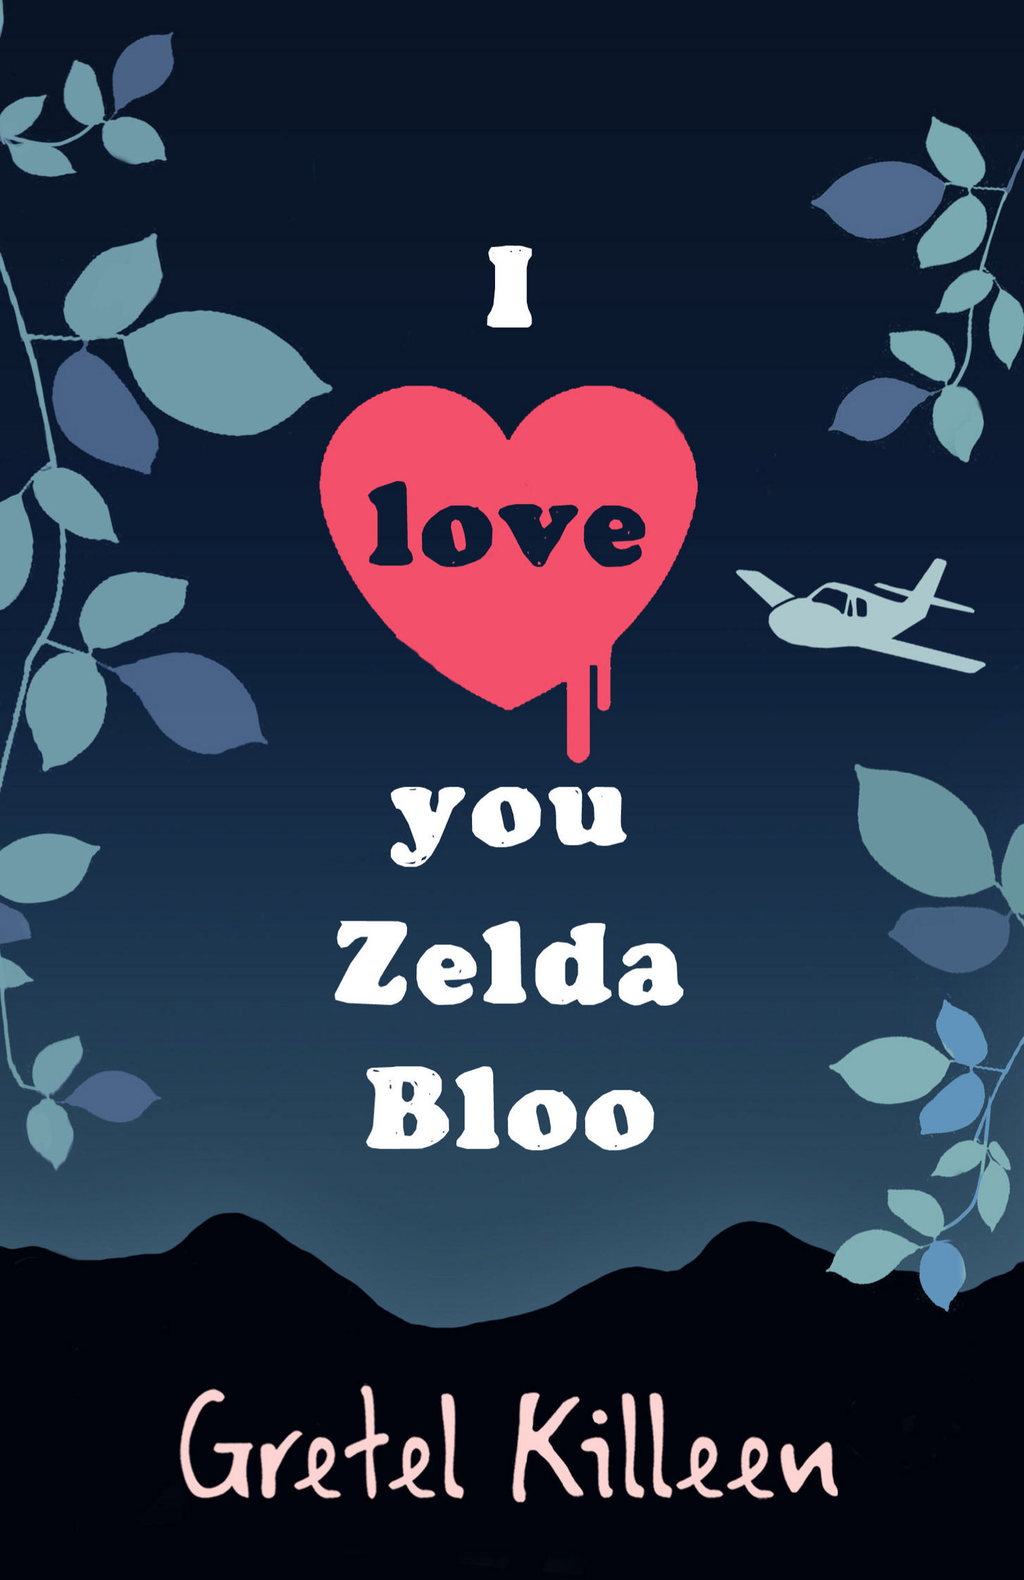 I Love You Zelda Bloo By: Gretel Killeen